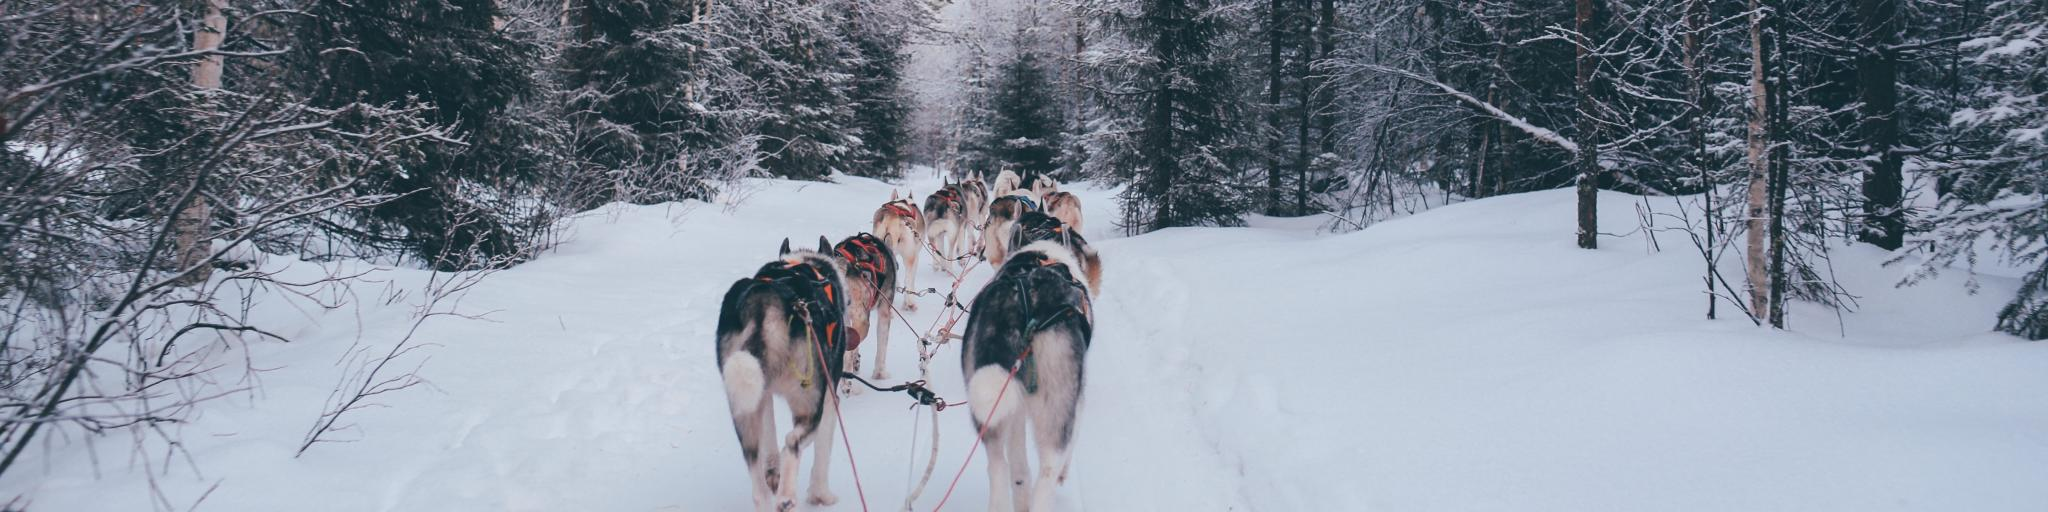 Dogs pulling a sled in the snow-covered town of Rovaniemi, Finland